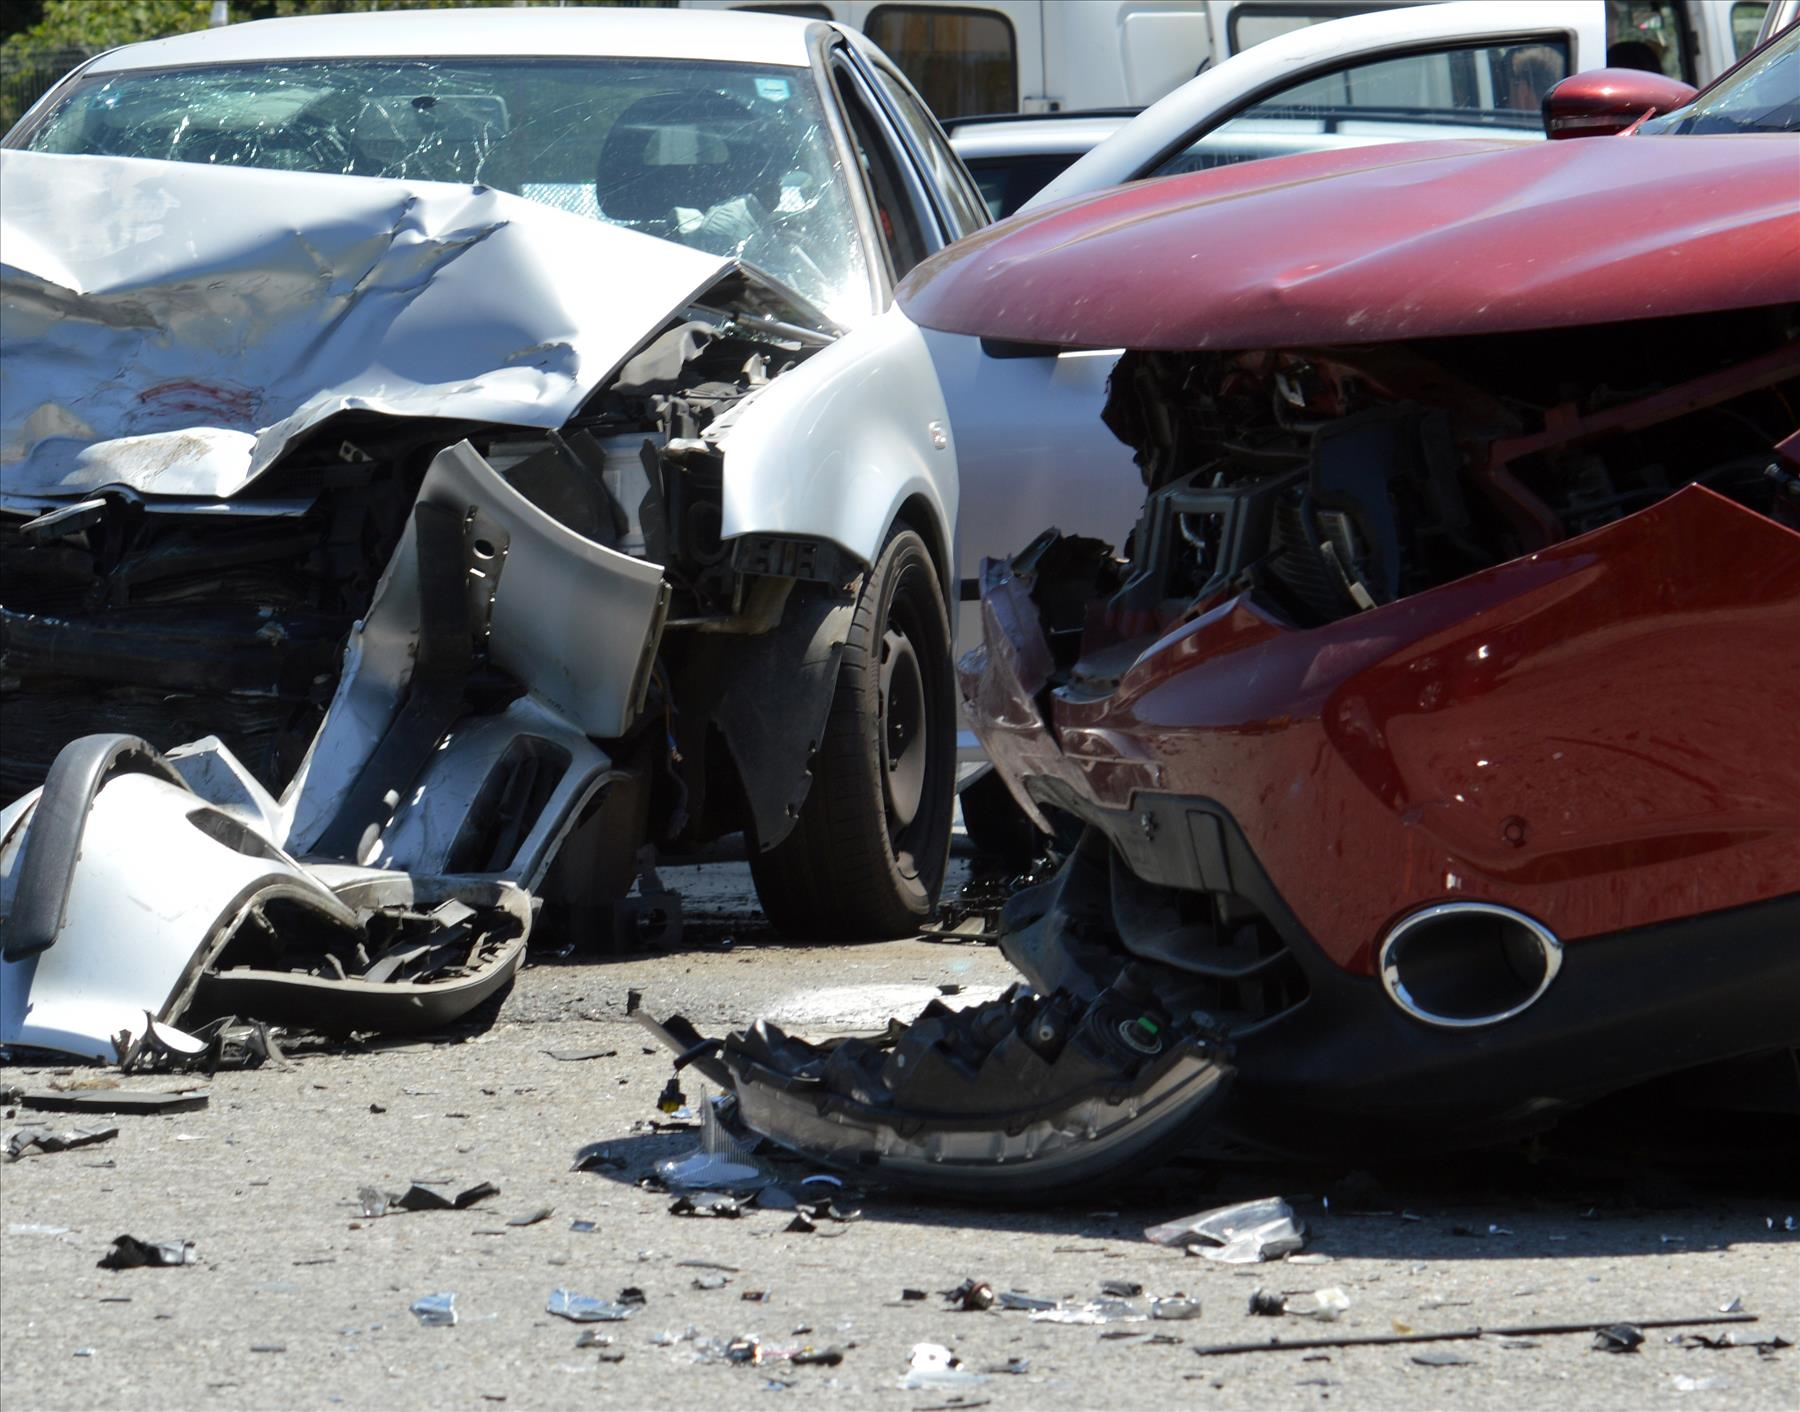 Hiring a Personal Injury Lawyer in Scarborough after a Motor Vehicle Accident Takes Place